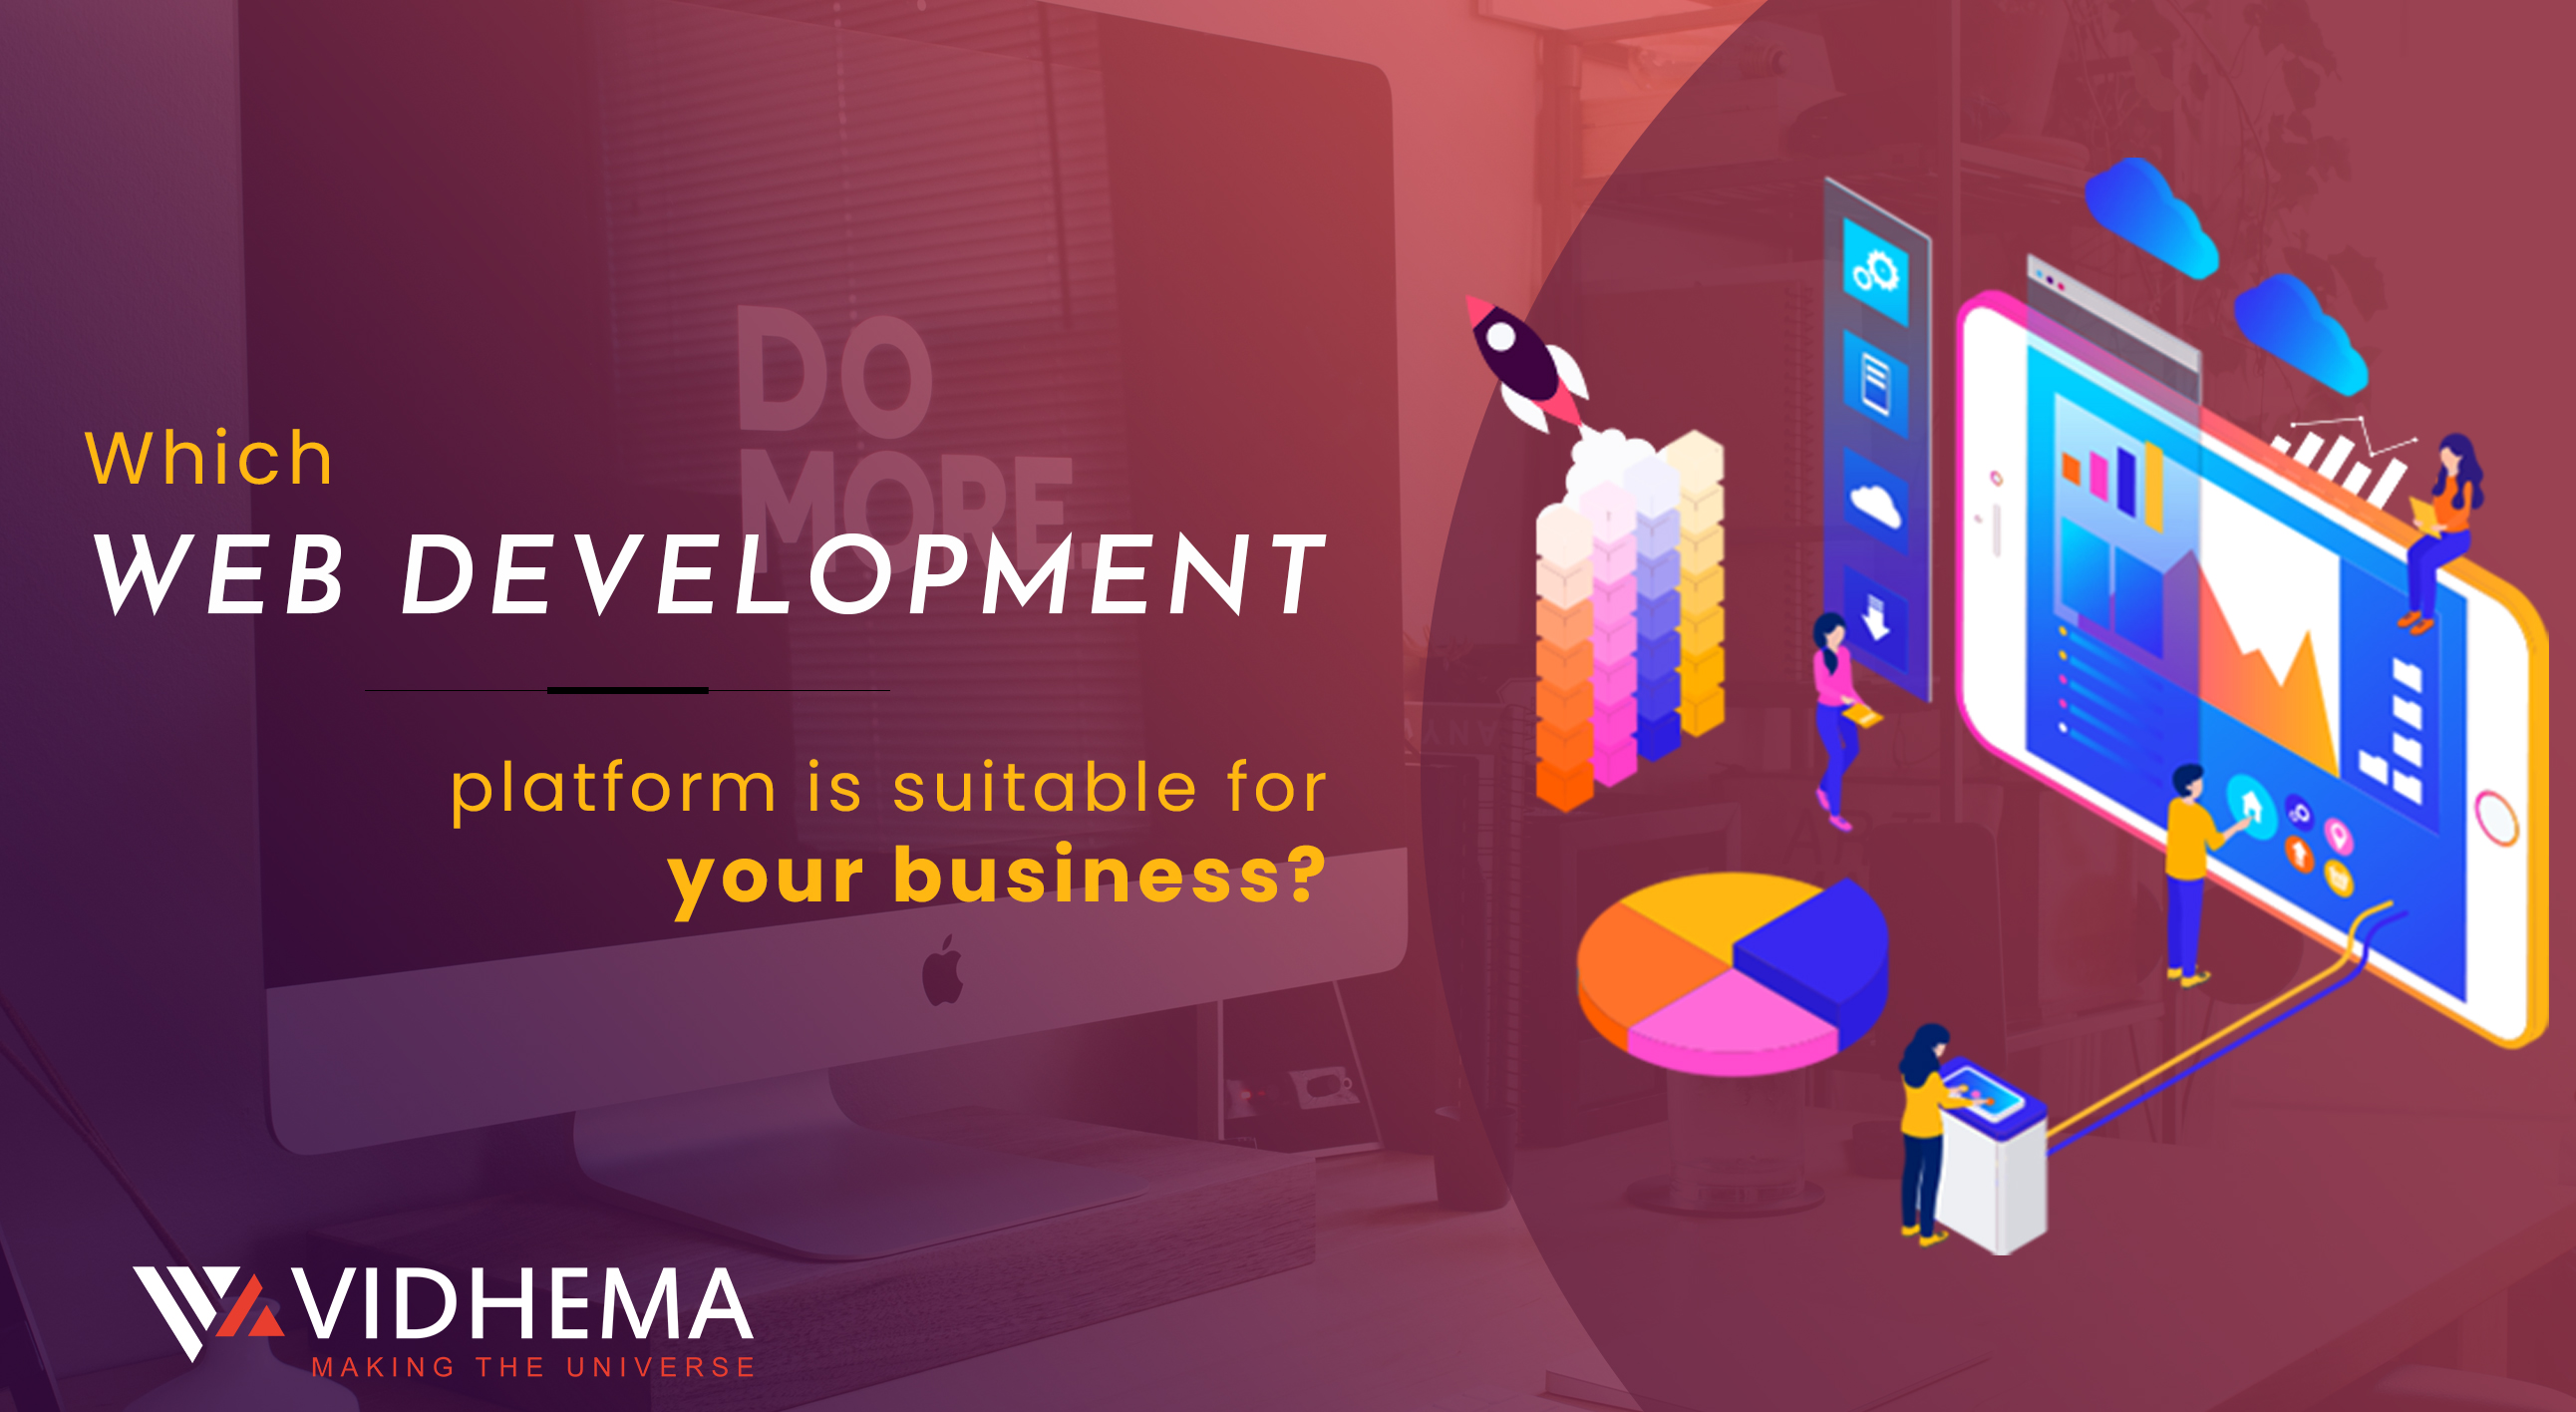 Which Web development platform is suitable for your business?